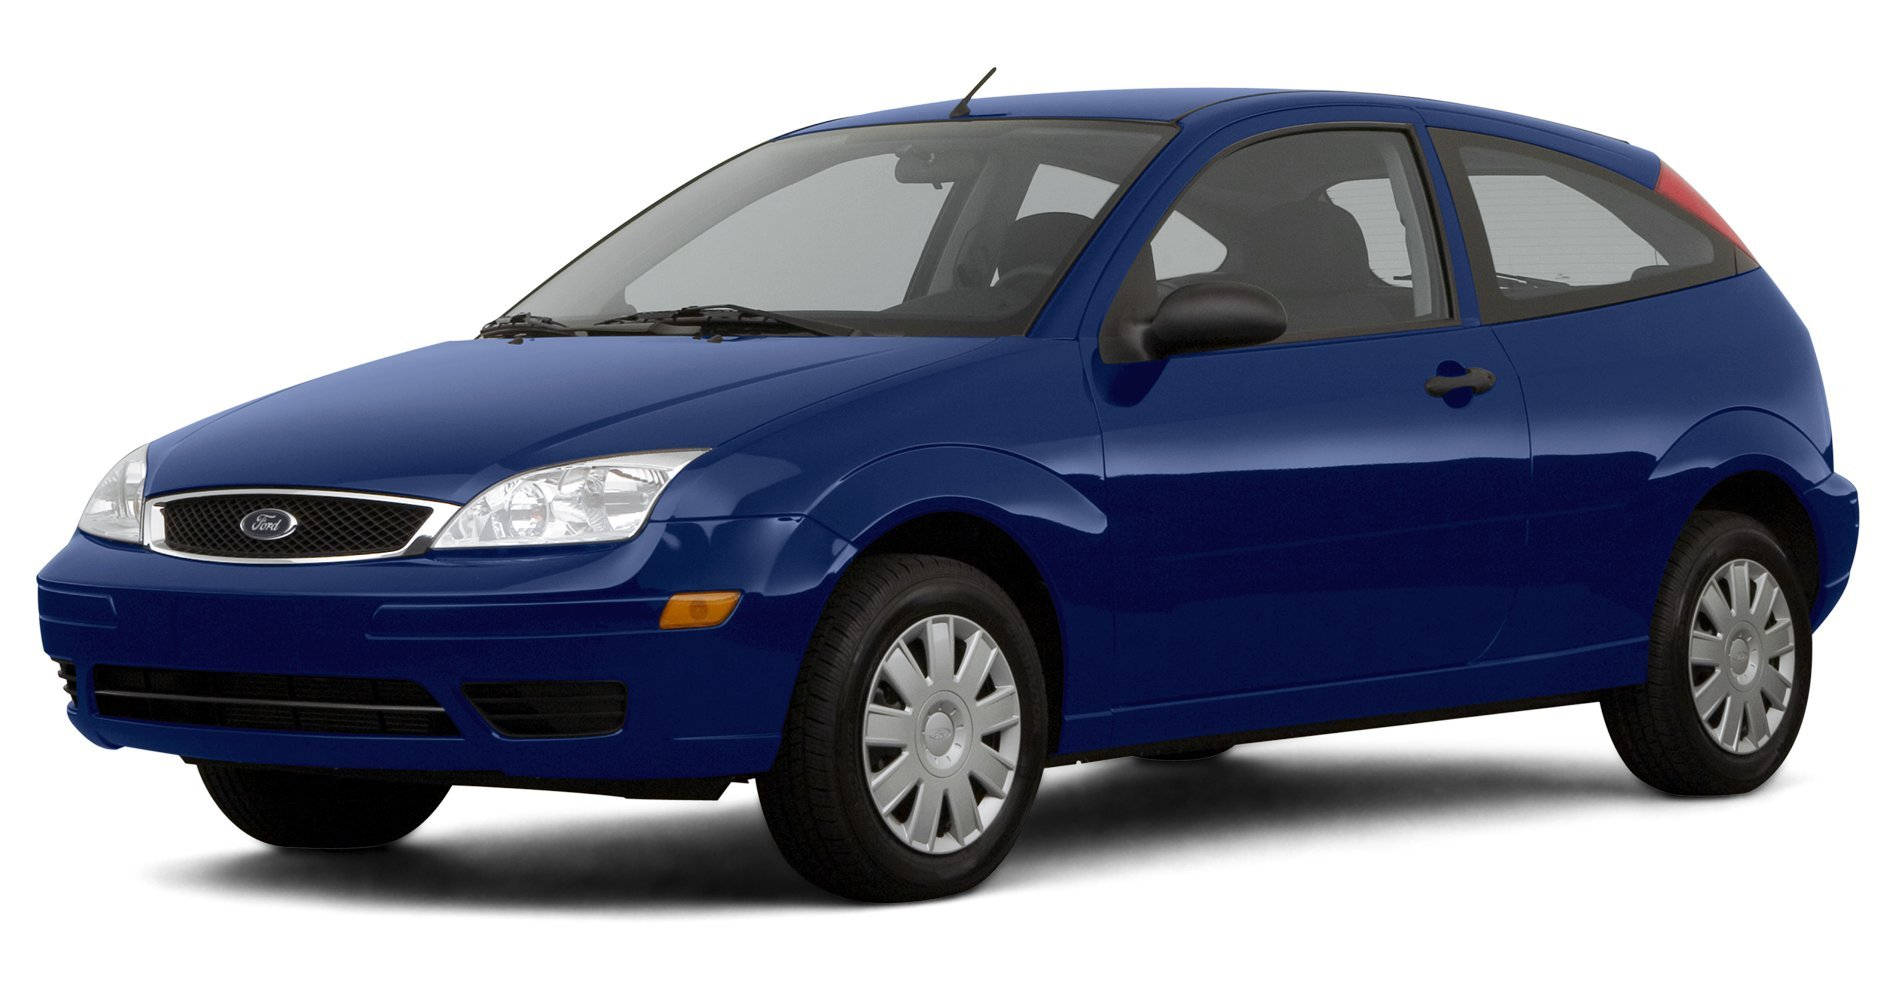 2007 Ford Focus S, 3-Door Coupe ...